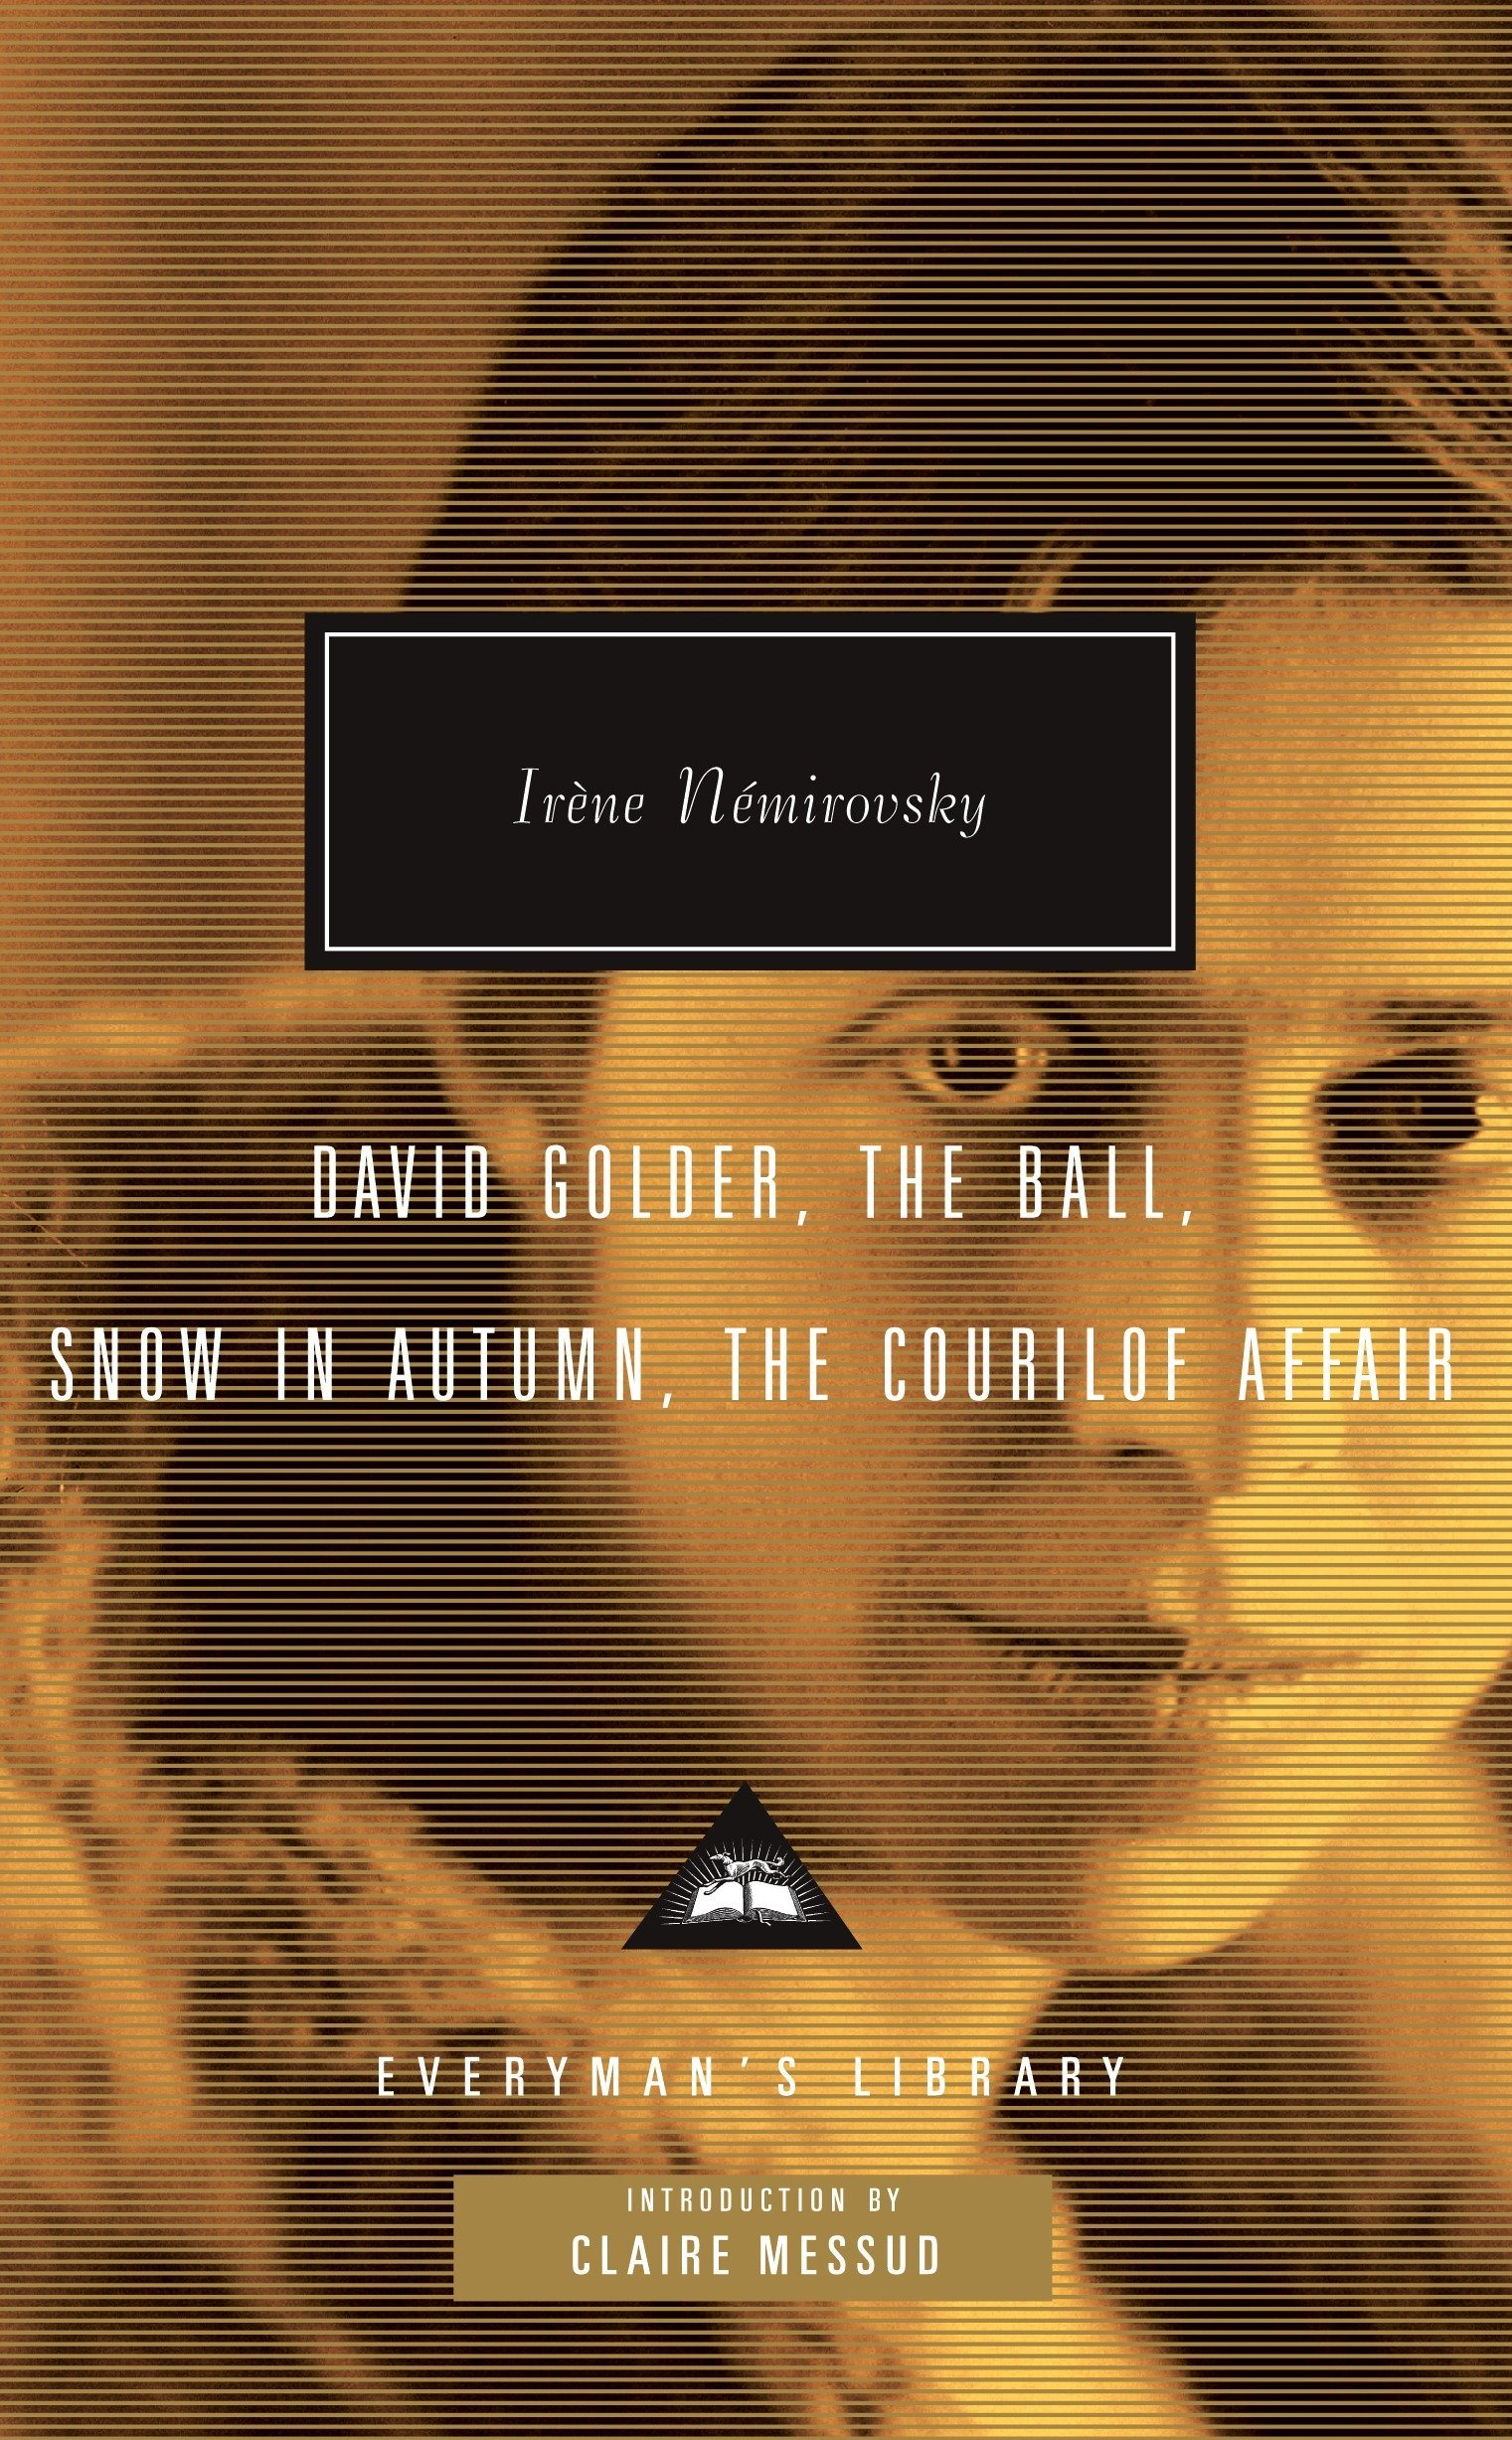 Download David Golder, The Ball, Snow in Autumn, The Courilof Affair (Everyman's Library Contemporary Classics Series) pdf